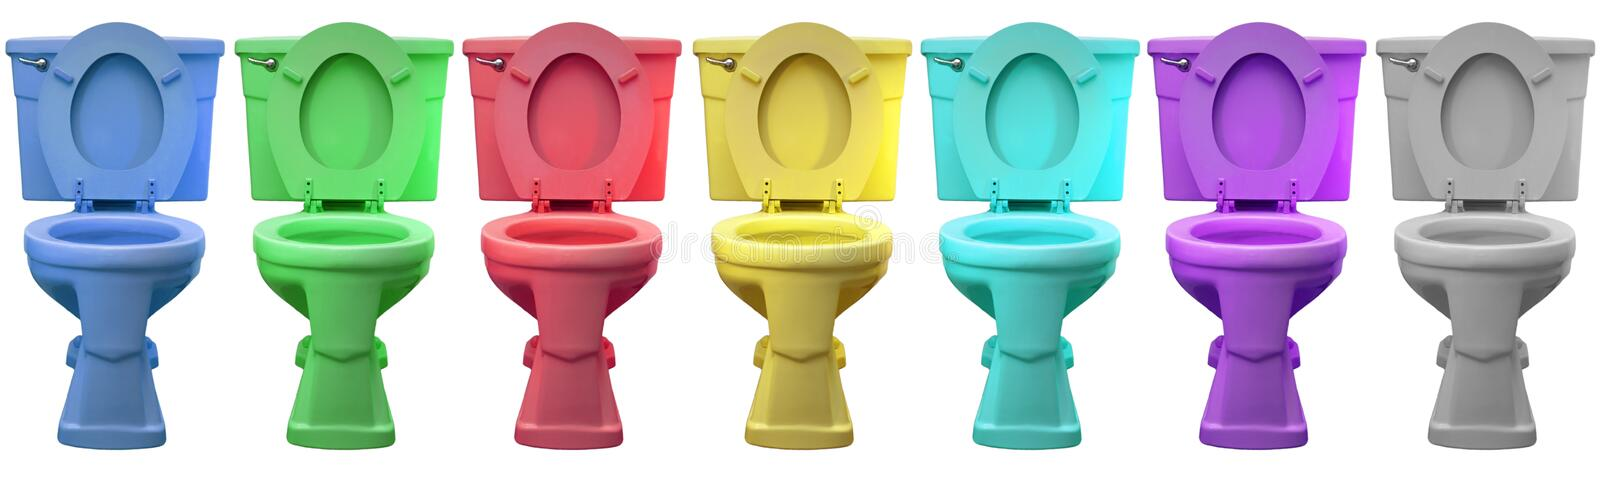 Download Multi Color Toilet Commode Head Porcelain Throne Stock Image - Image of bathroom, fixture: 15284299